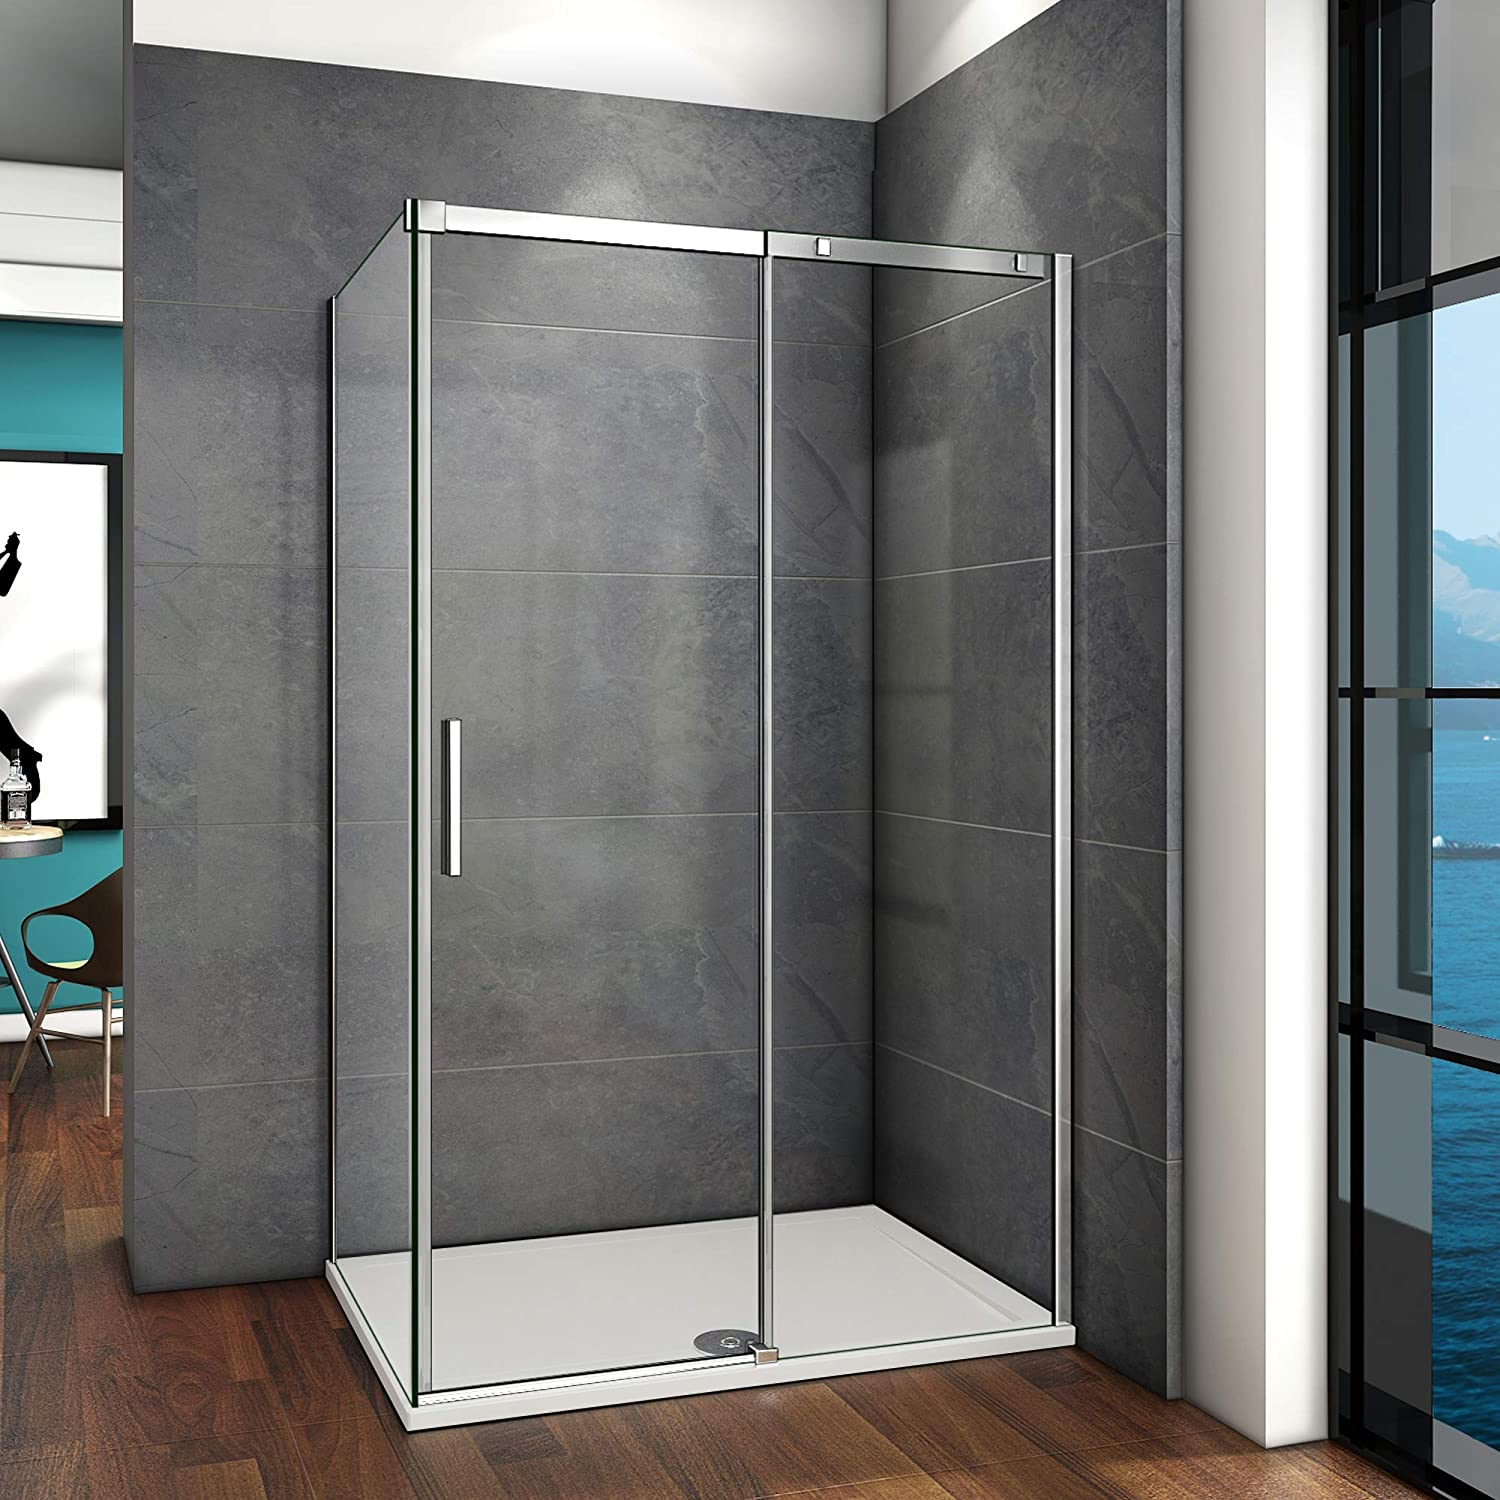 1000x800mm Sliding Shower Door Screen 6mm Glass Shower Cubicle Enclosure